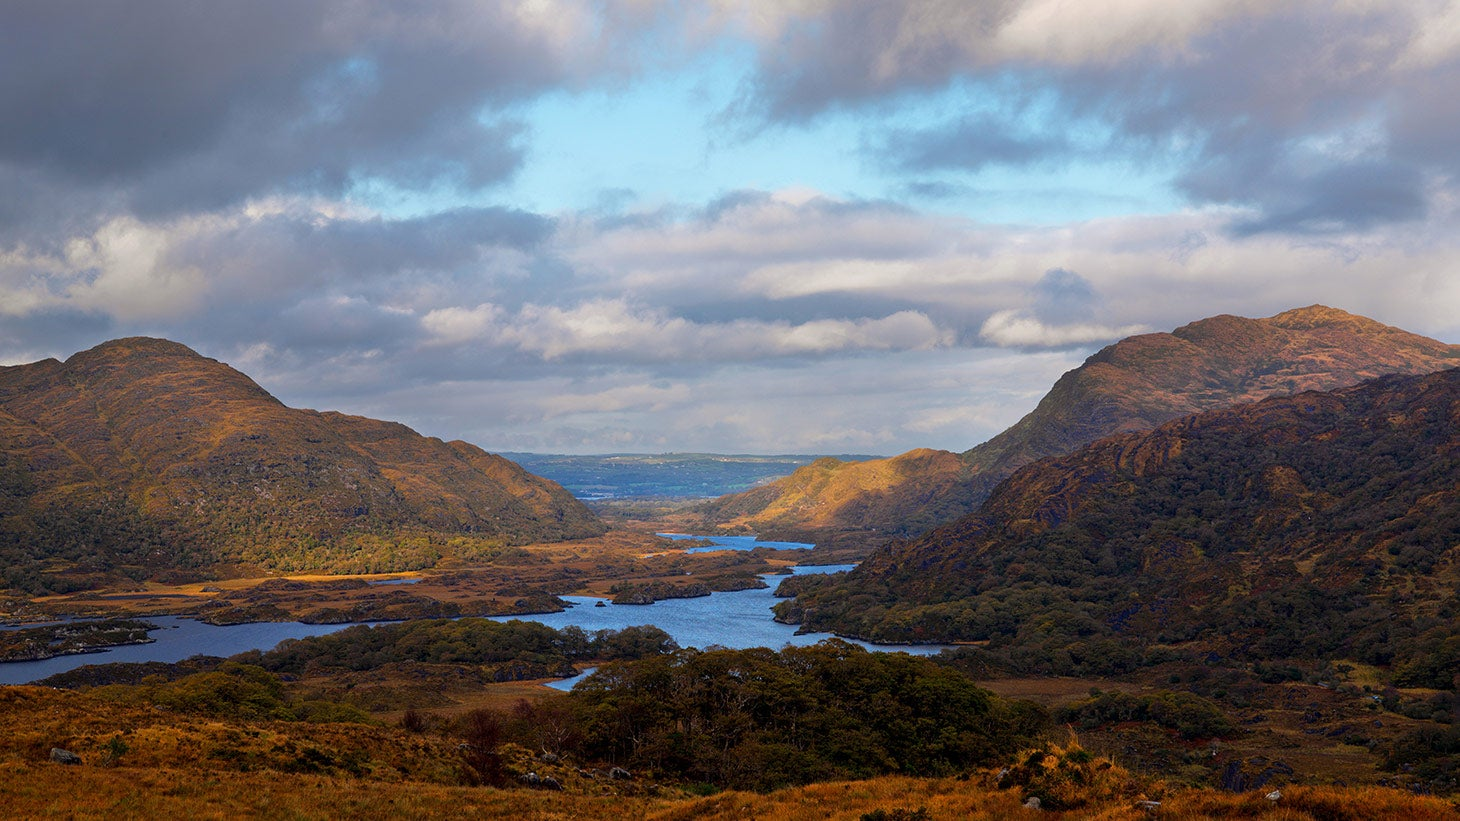 Enjoy the beauty of Killarney National Park on your visit to Kerry.